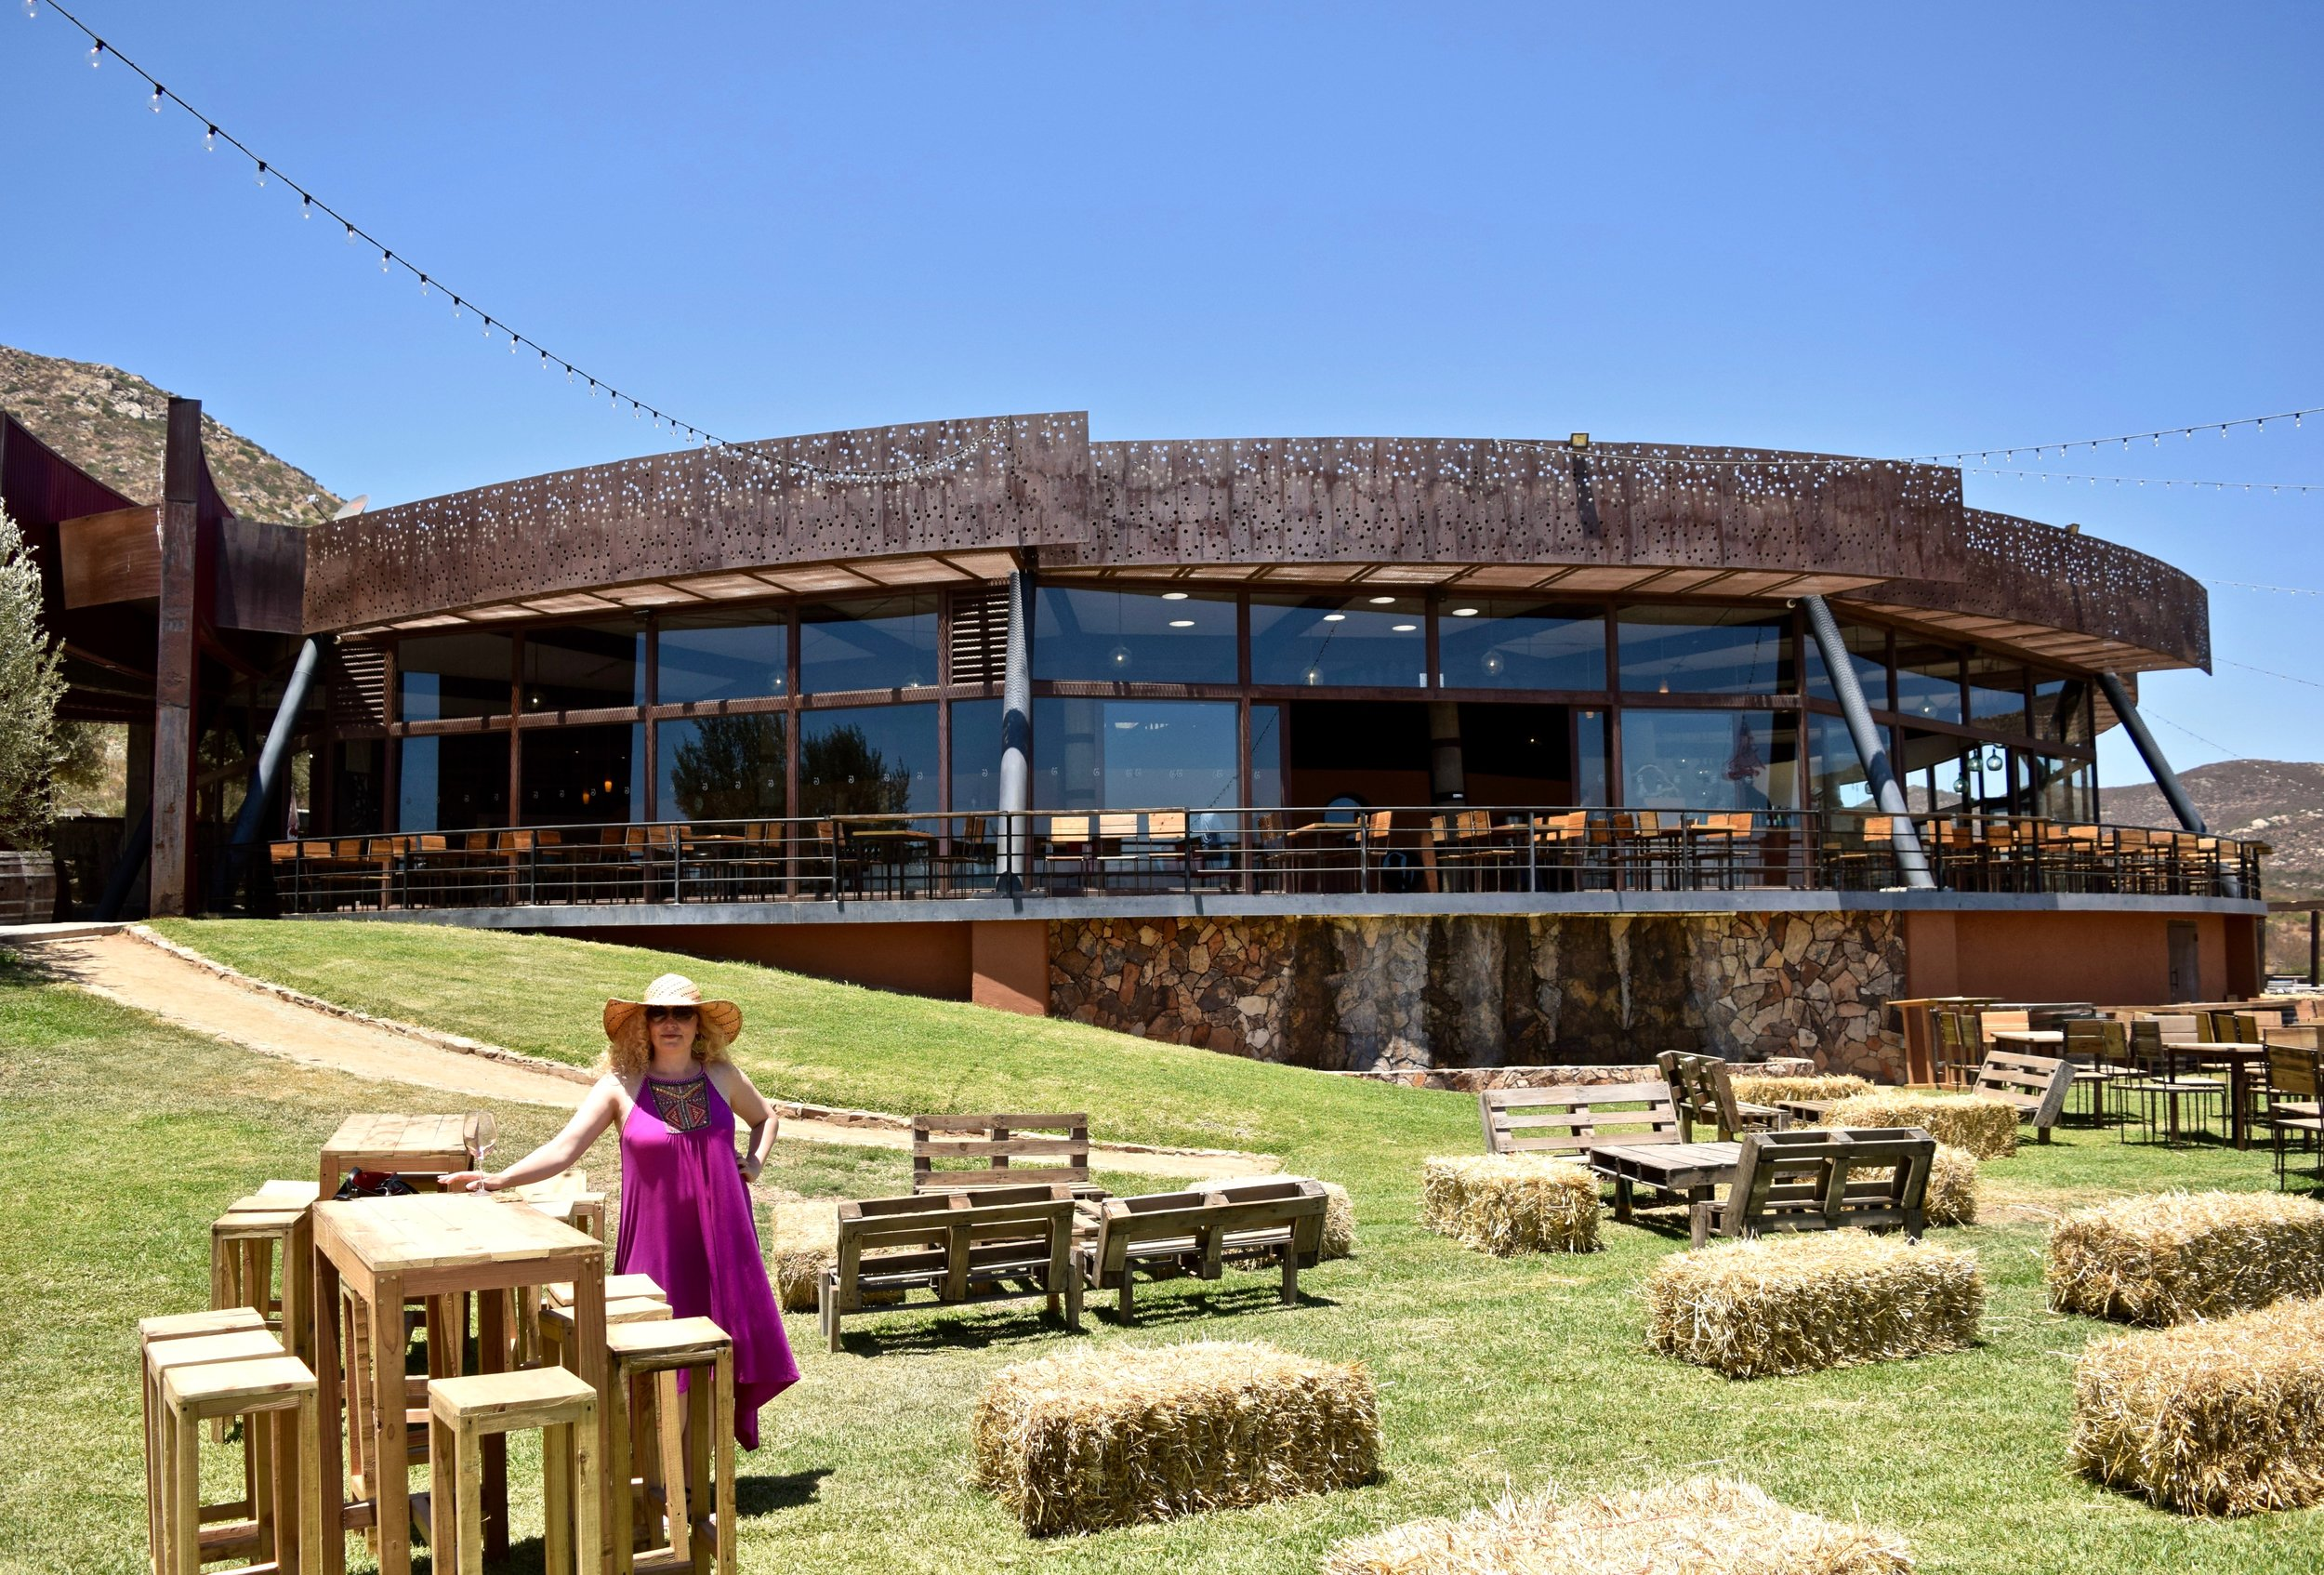 decantos- view of tasting room from outside.jpg